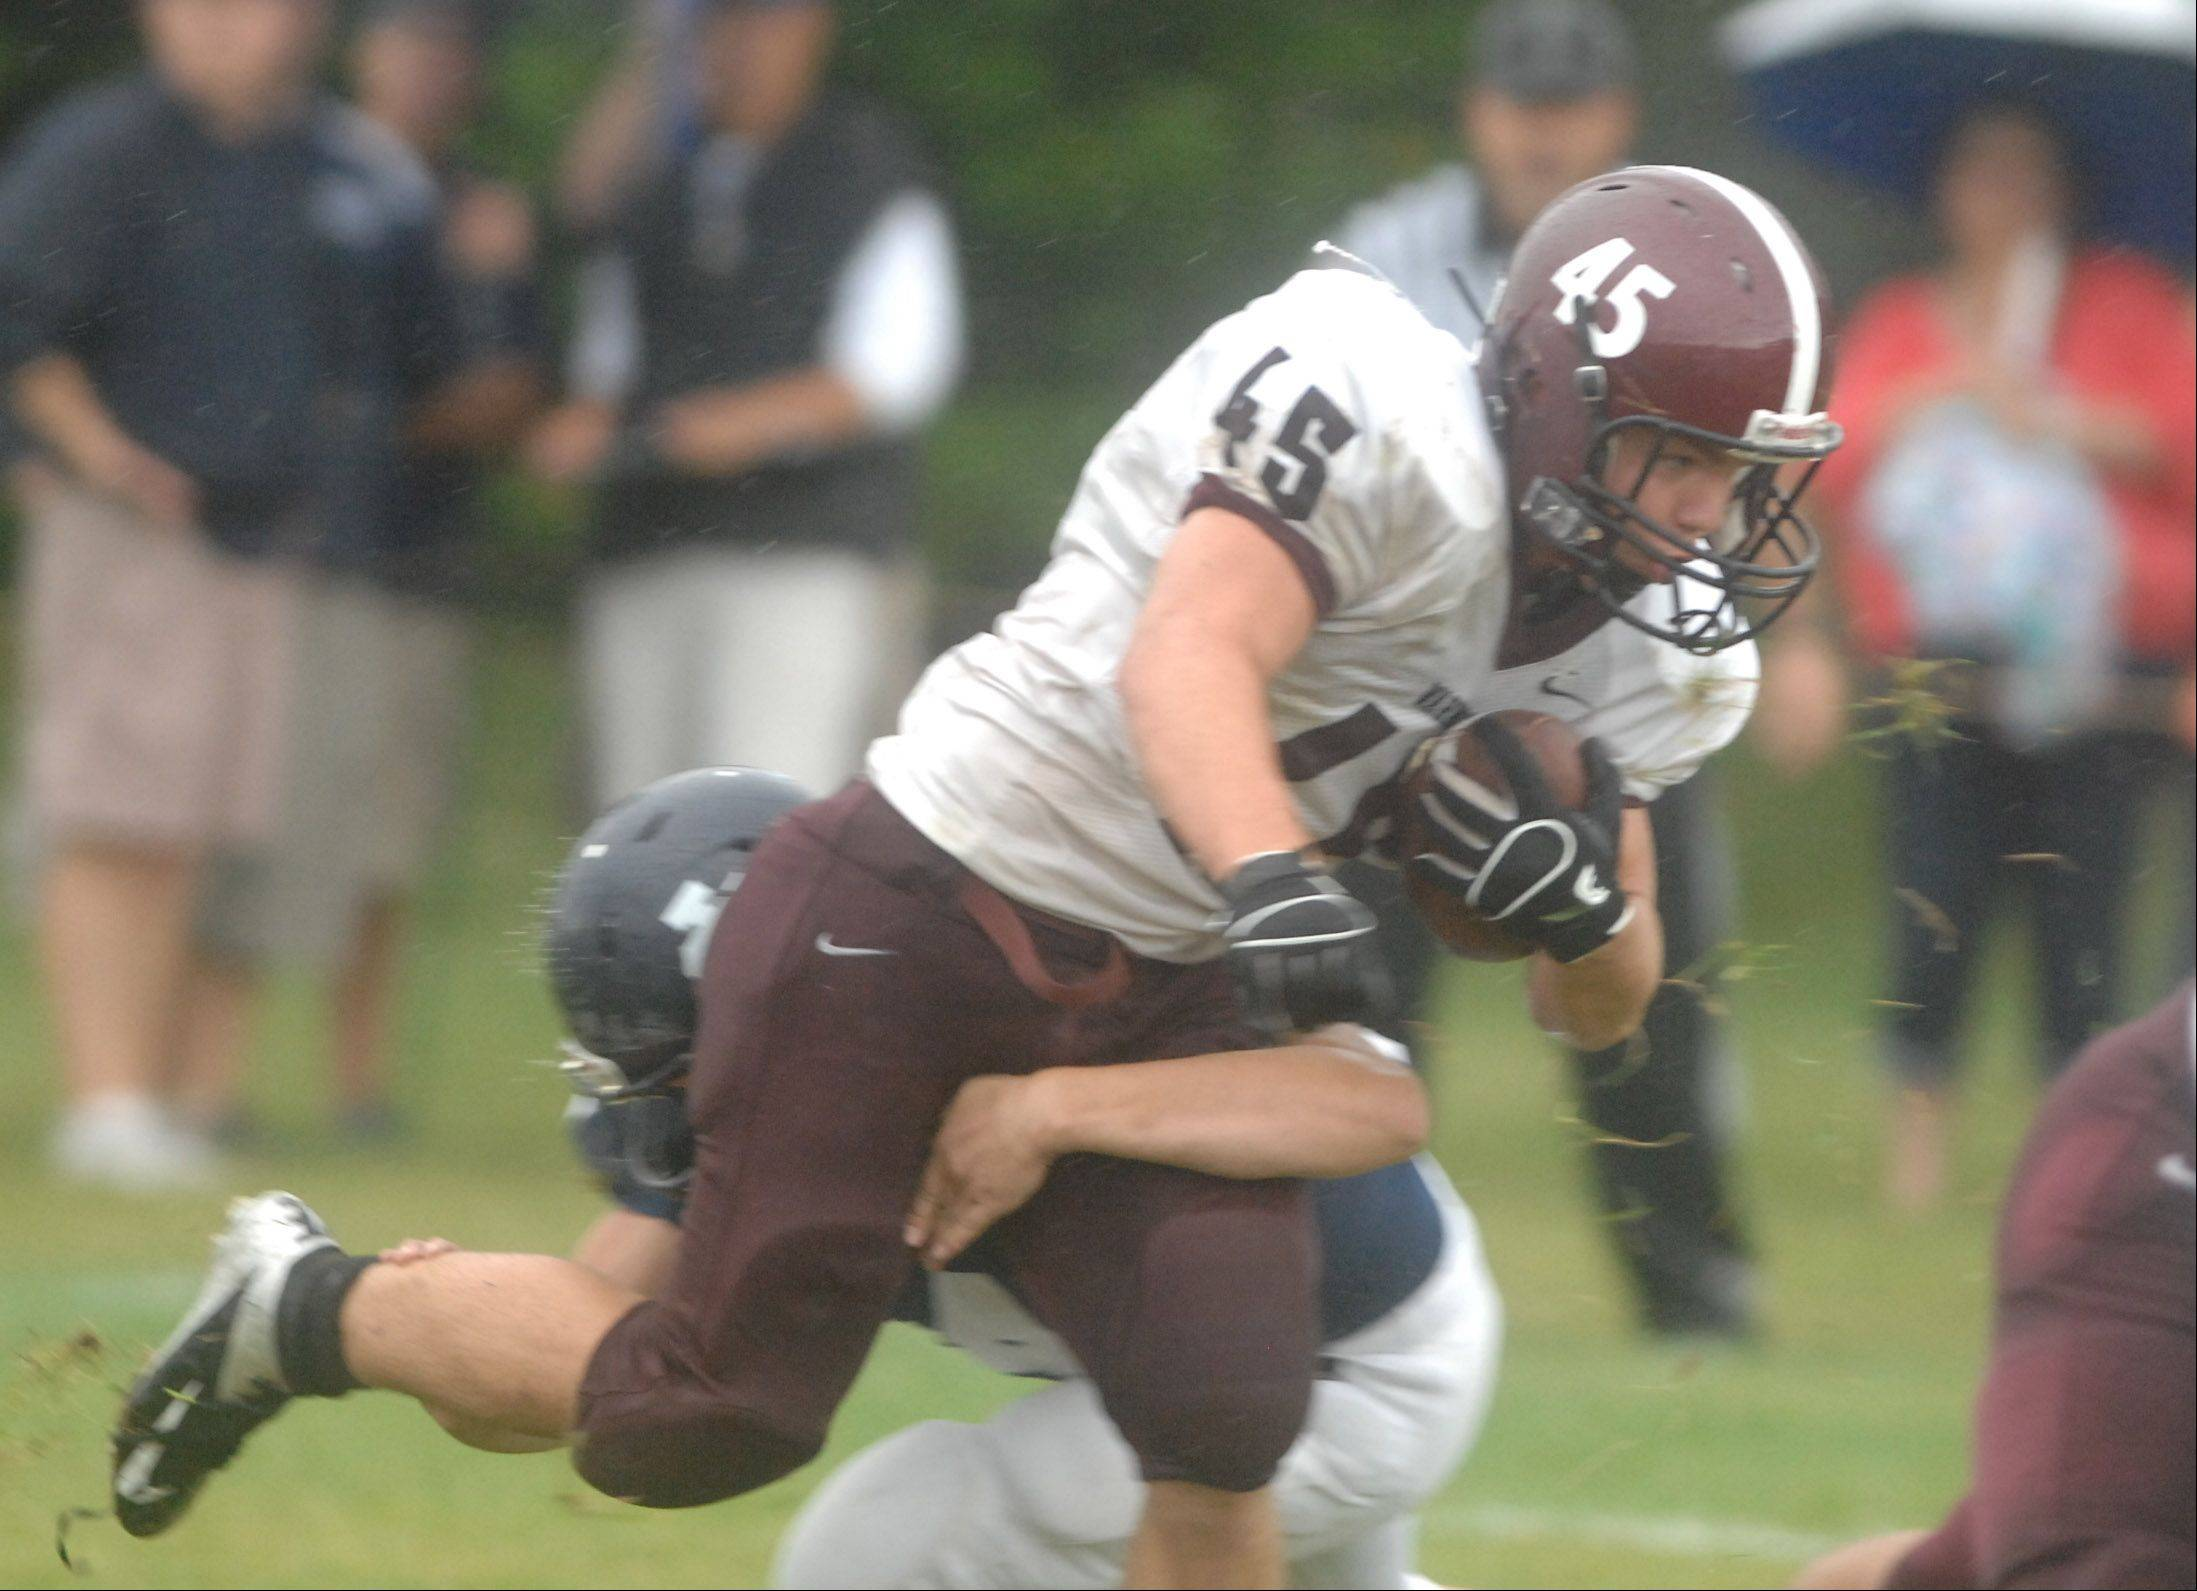 John Gemmel of Wheaton Academy plows through the line during the Wheaton Academy vs. Immaculate Conception game in Elmhurst Saturday.